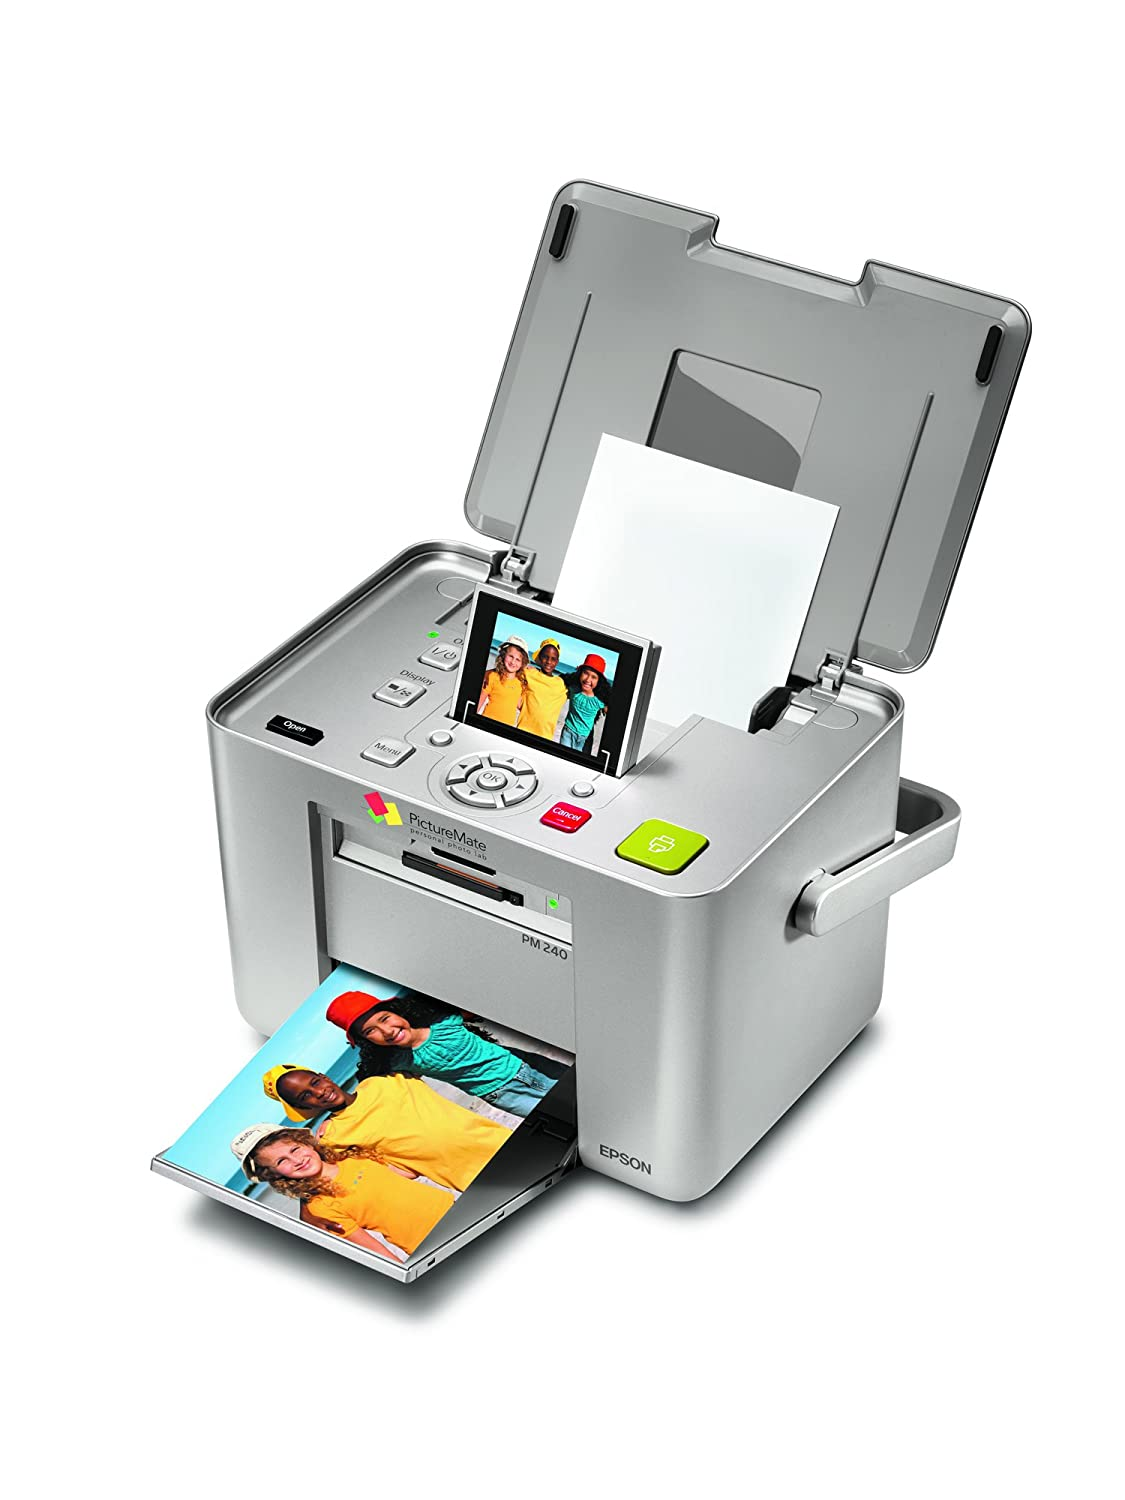 Amazon.com: Epson PictureMate 240 Snap (PM) 4 x 6 Photo ...